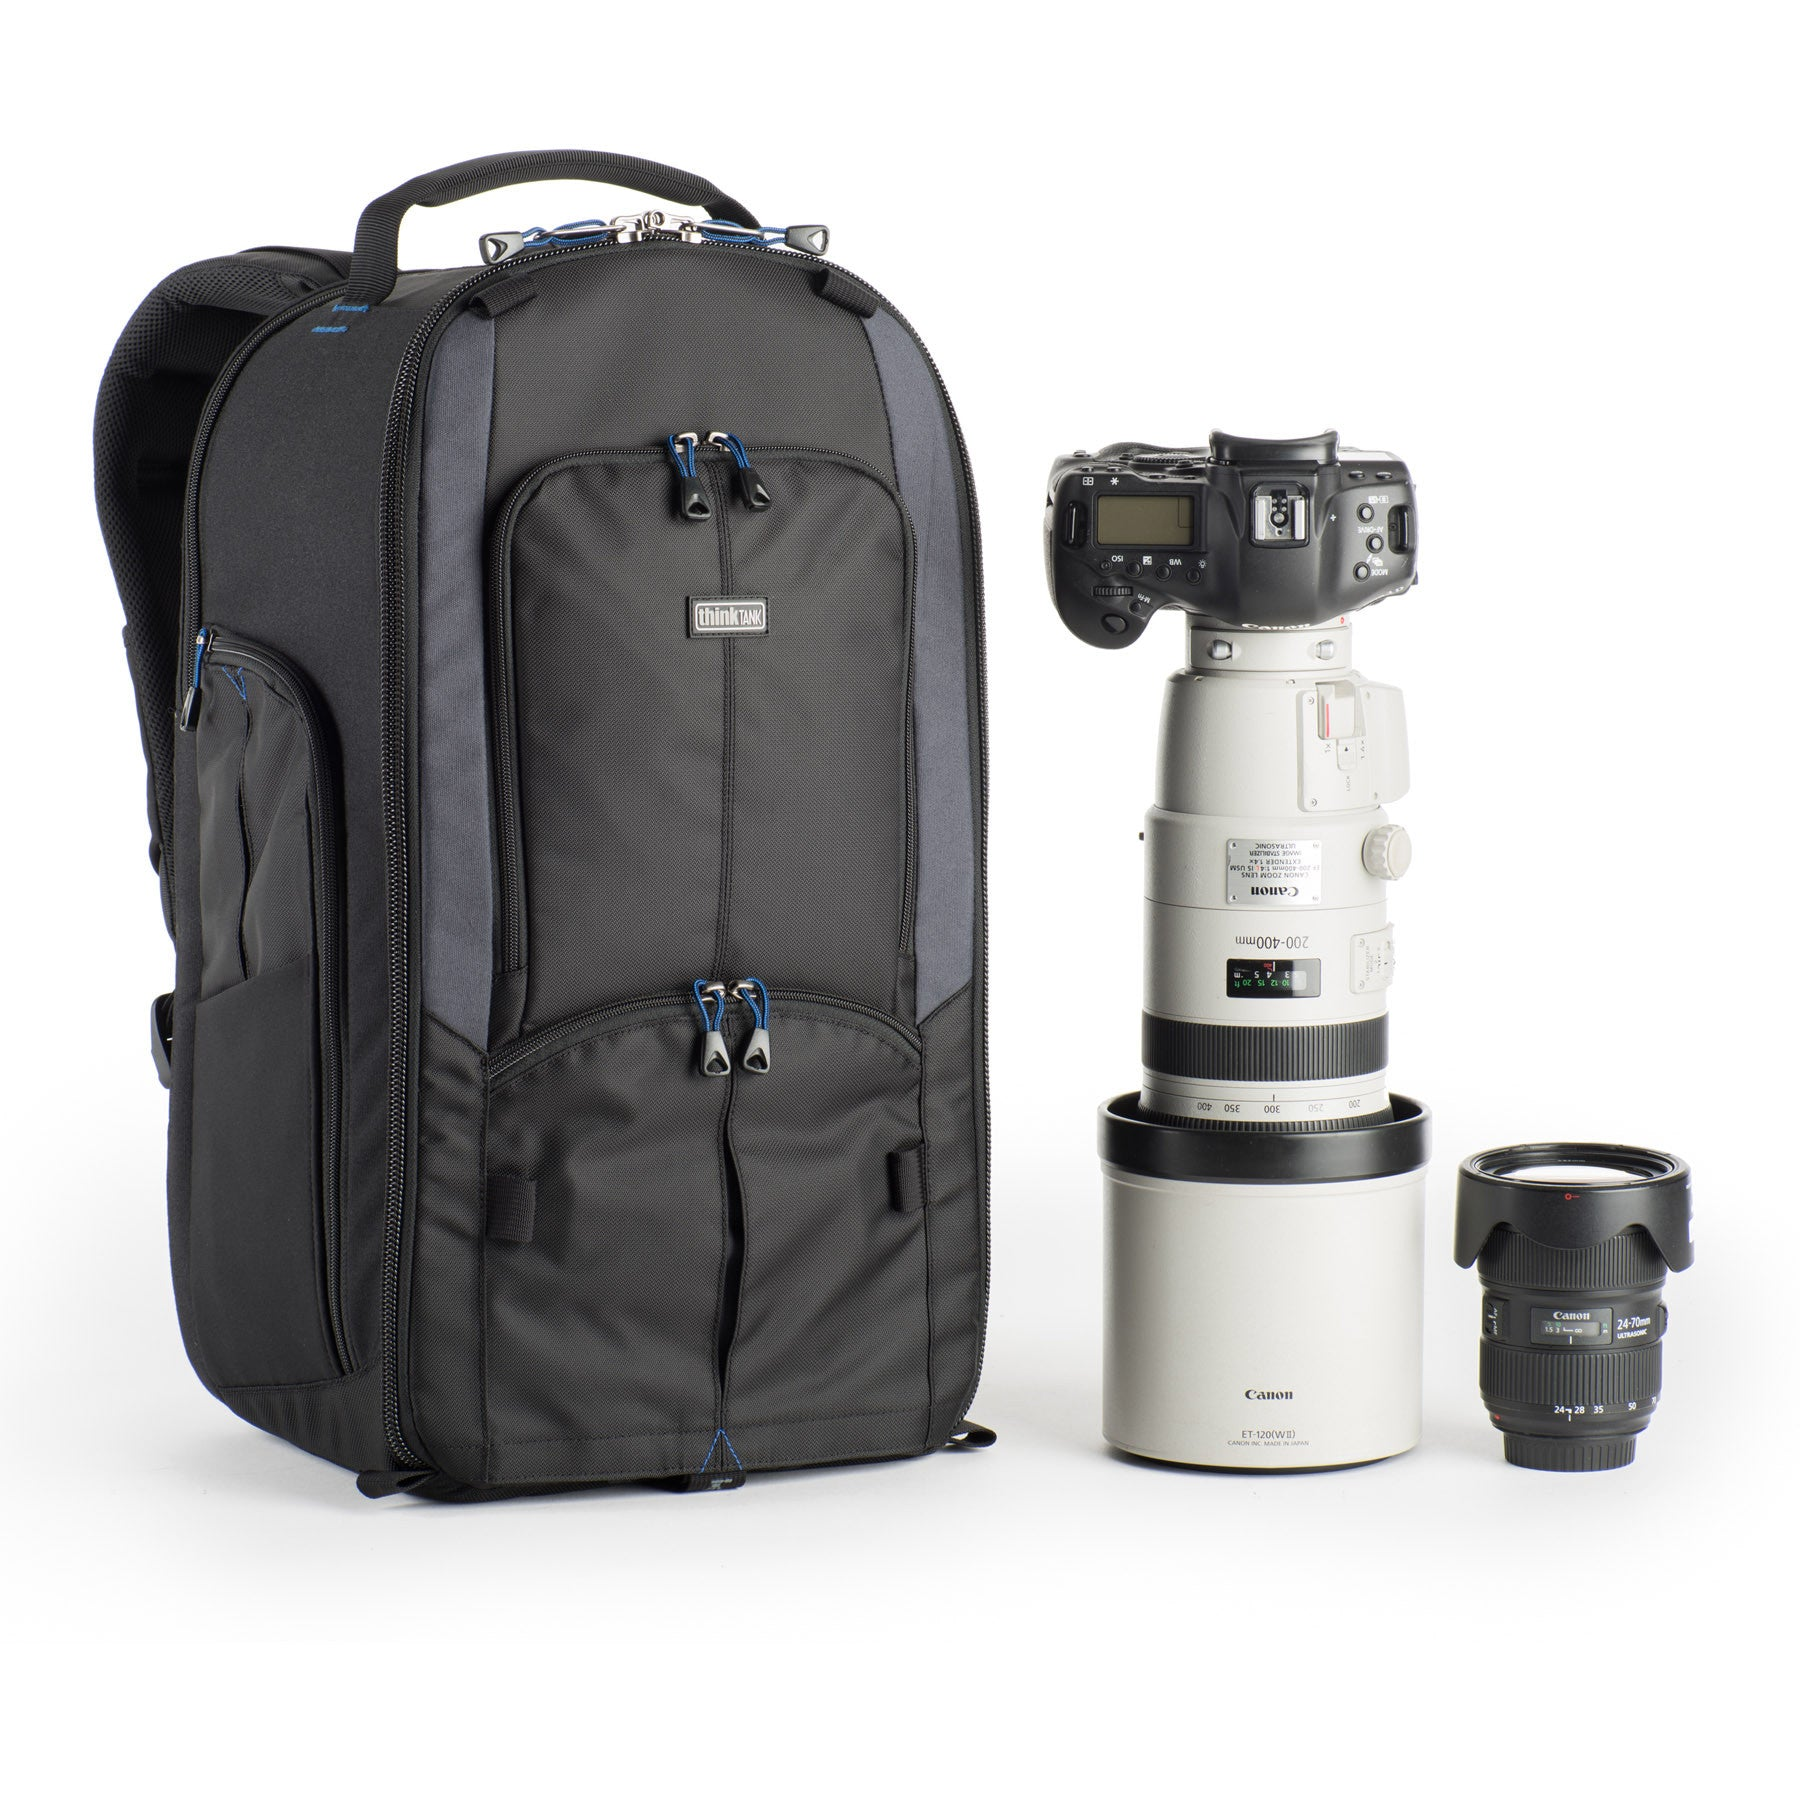 Fits 2 bodies with lenses attached or a gripped body with a 200–400mm f/4 attached